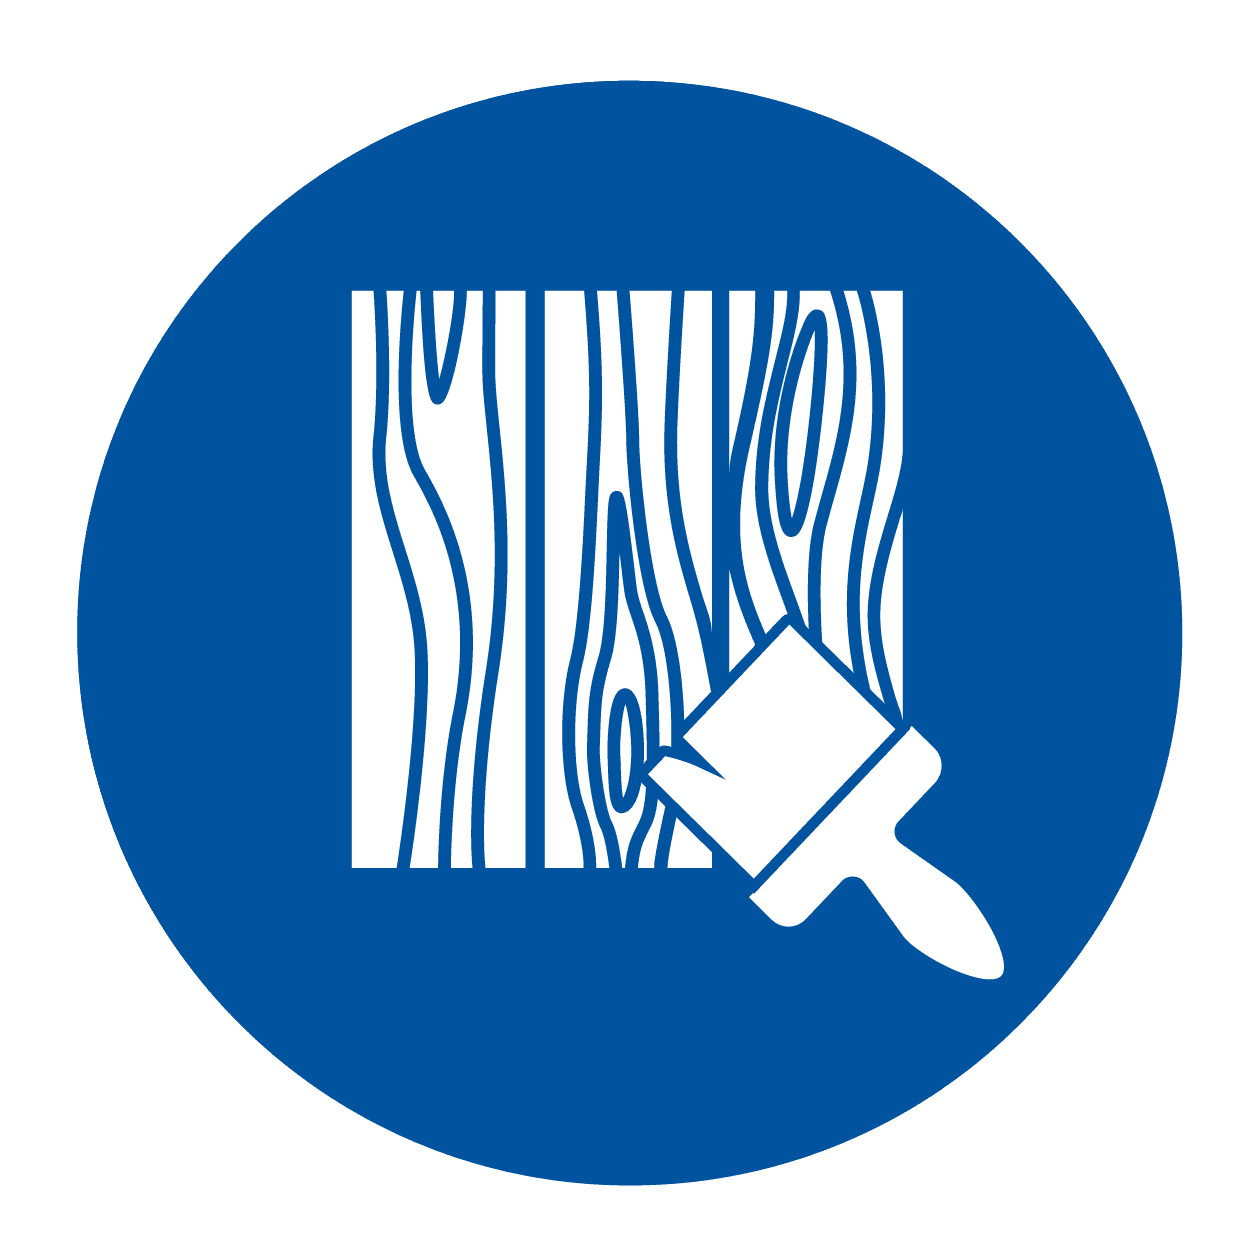 icon of wood and an exterior wood staining brush.